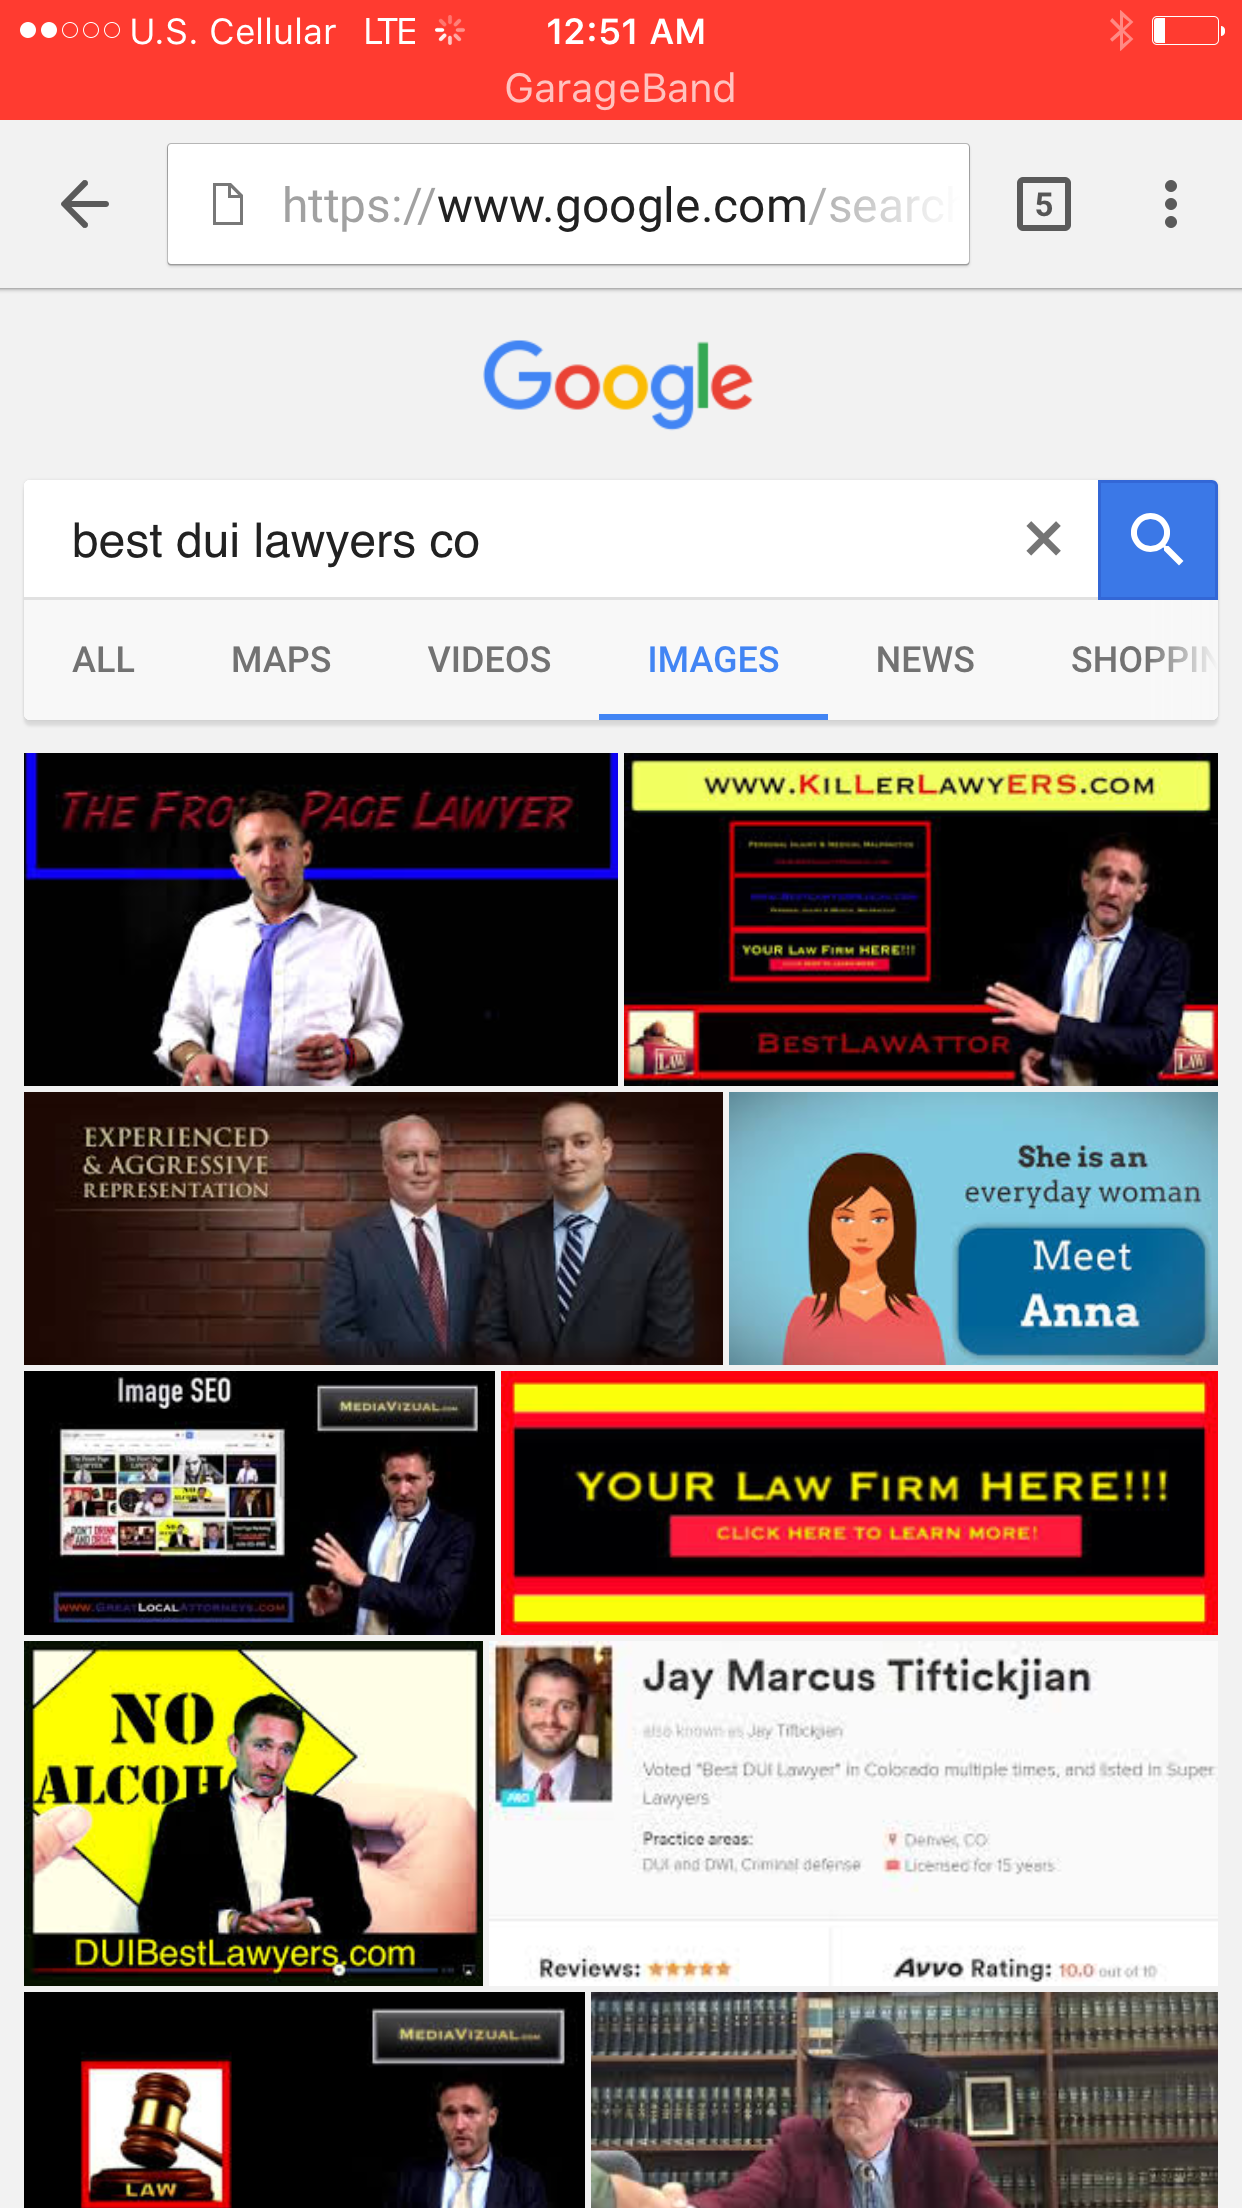 best dui lawyers http://frontpagelawyers.com attorneys online video marketing , Attorneys DUI LAW